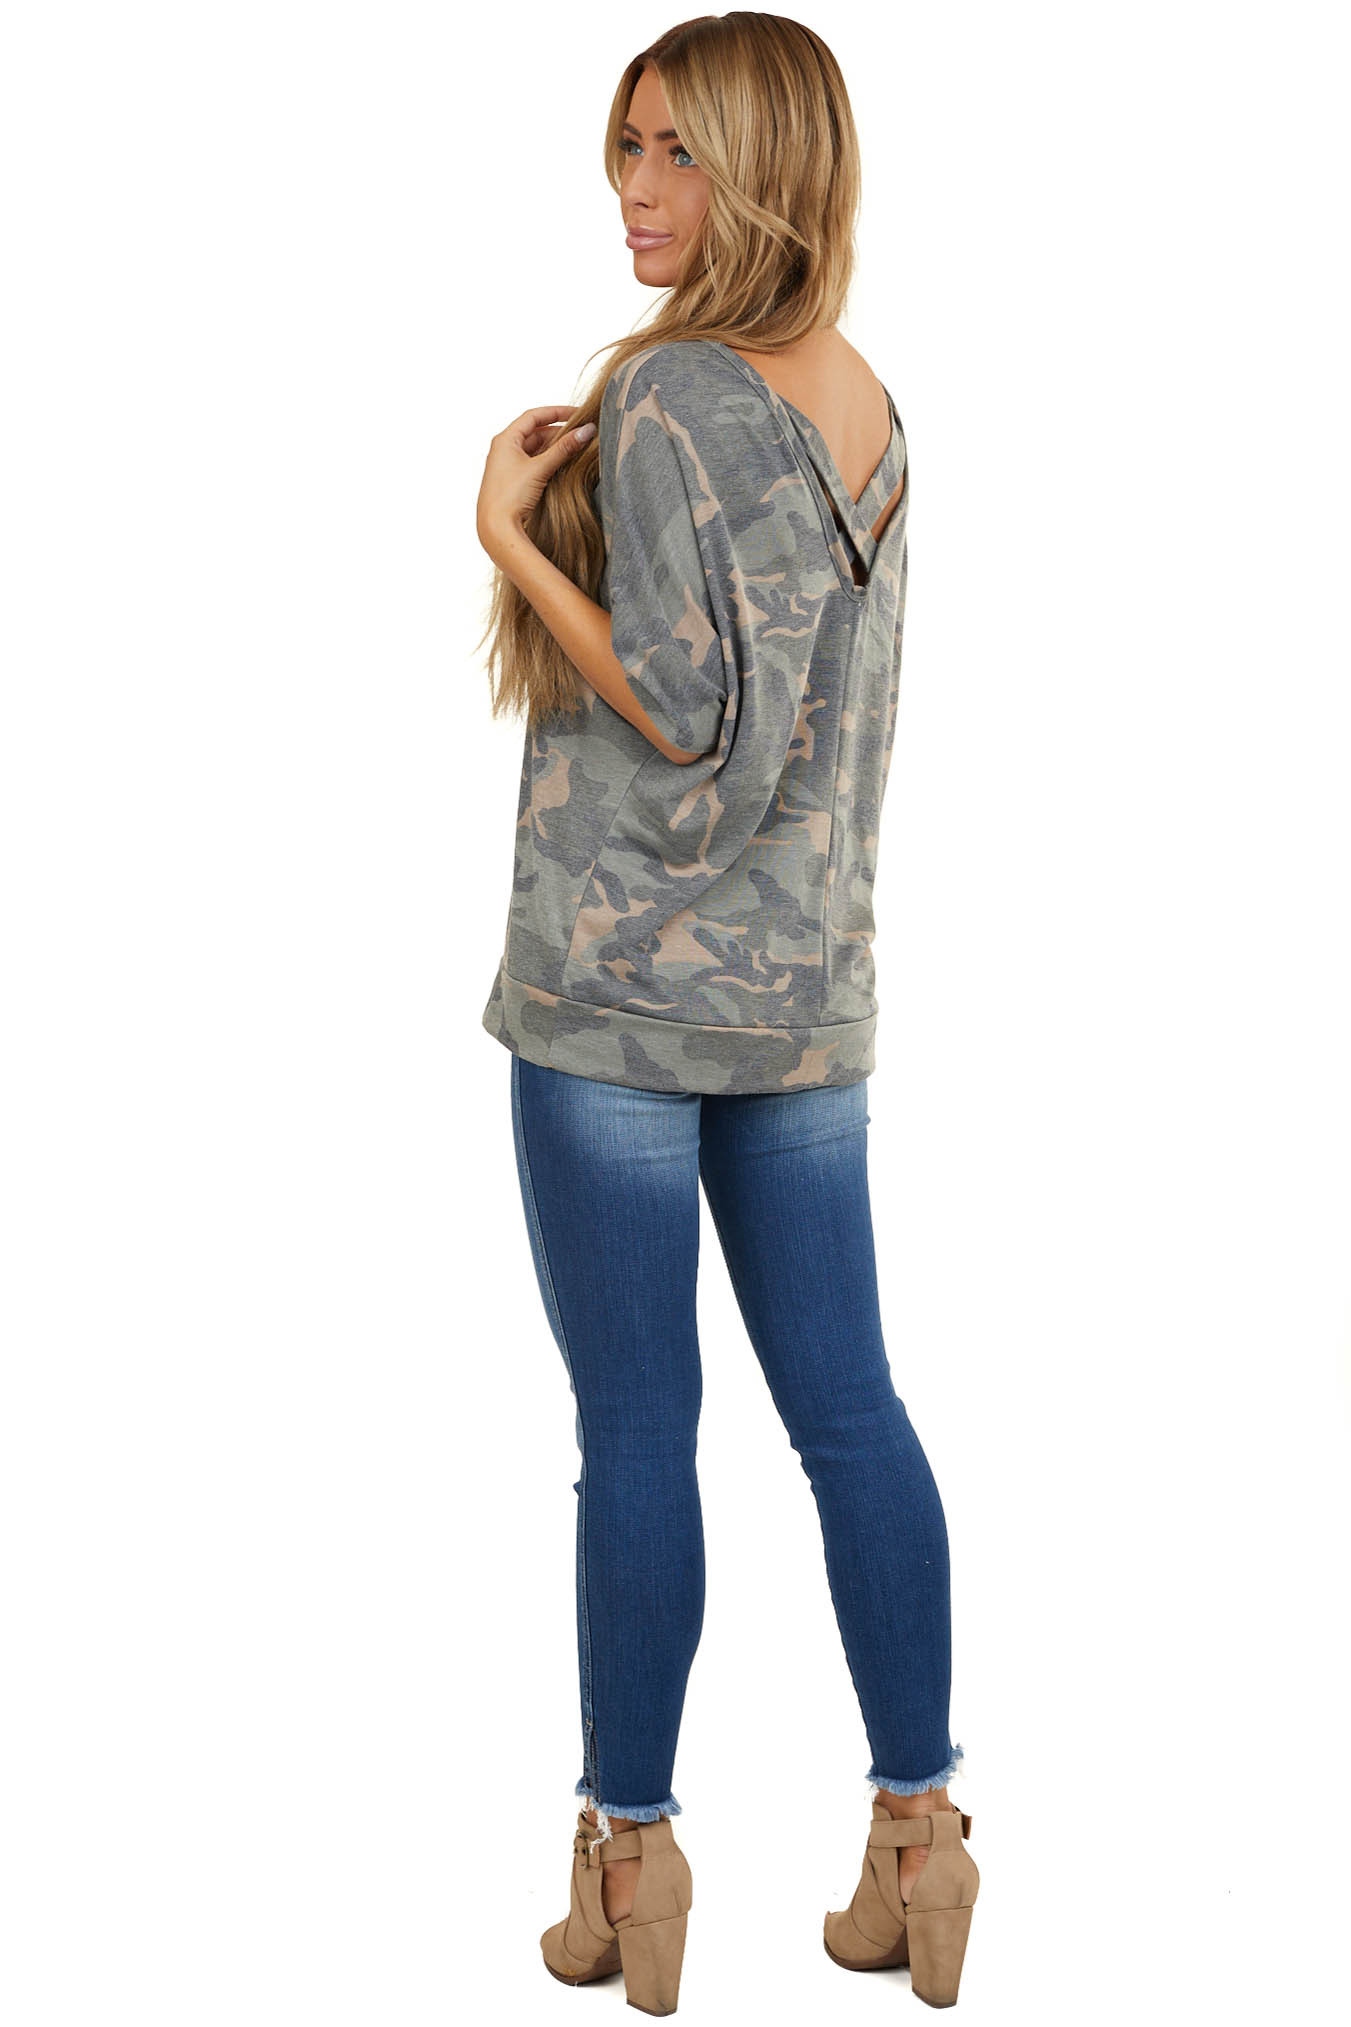 Camo Bat Wing Short Sleeve Top with Criss Cross Back